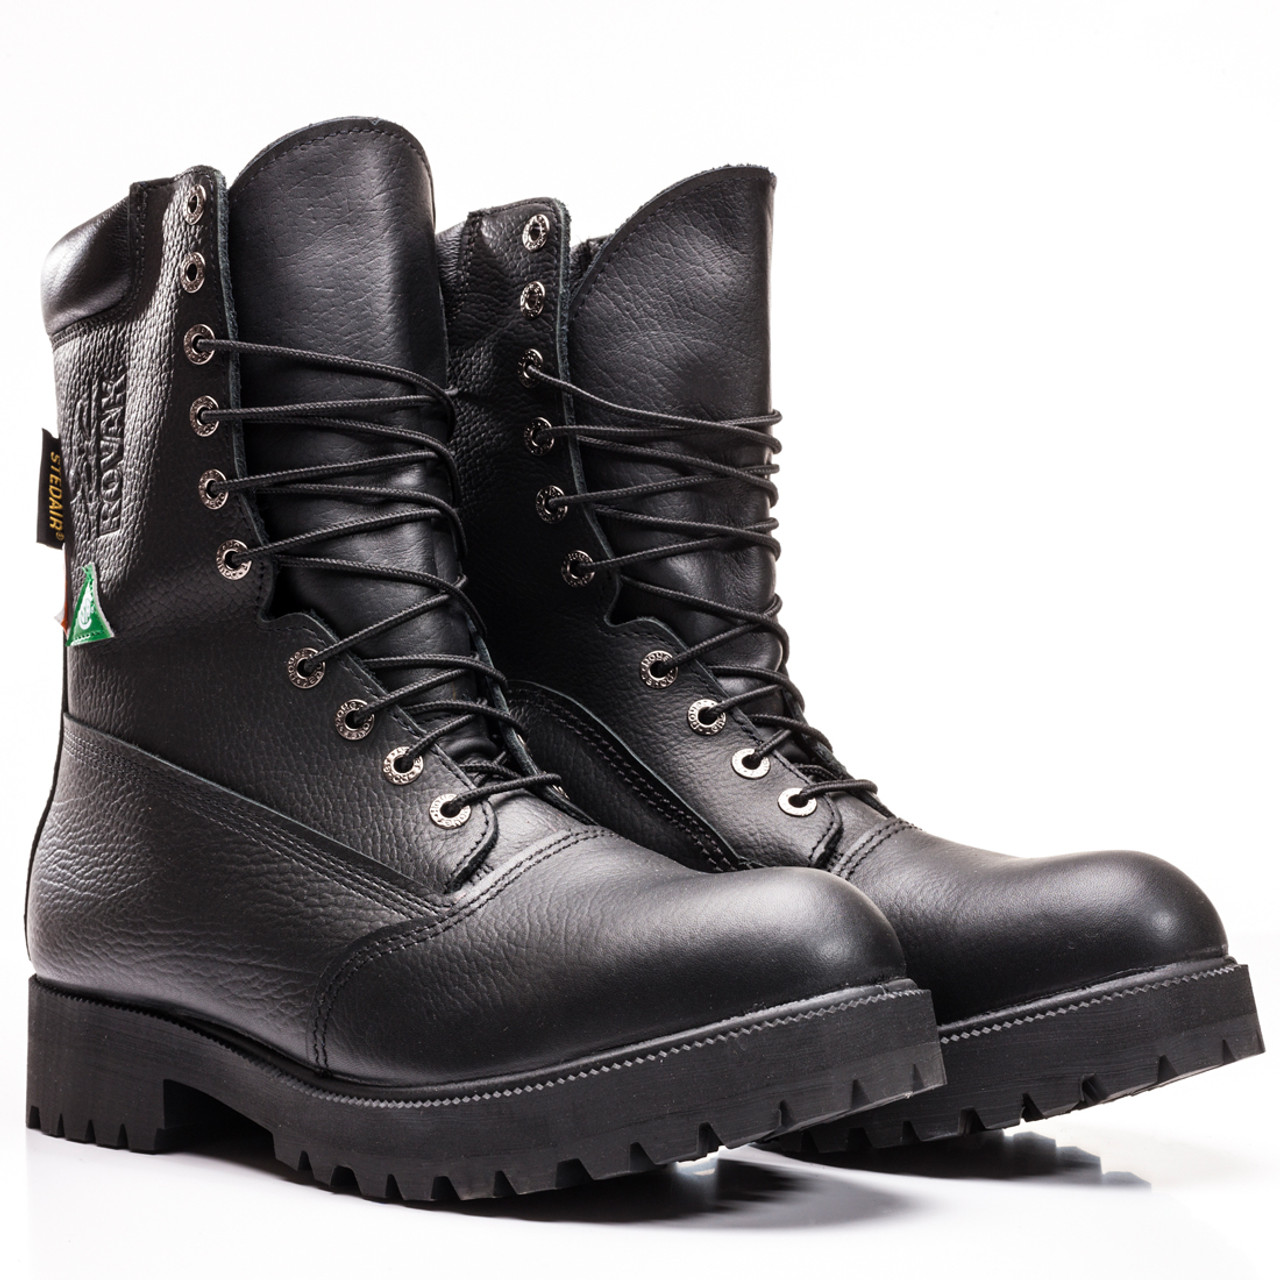 2482f90f05d Royer 8700 Waterproof Lineman CSA Boot FREE SHIPPING